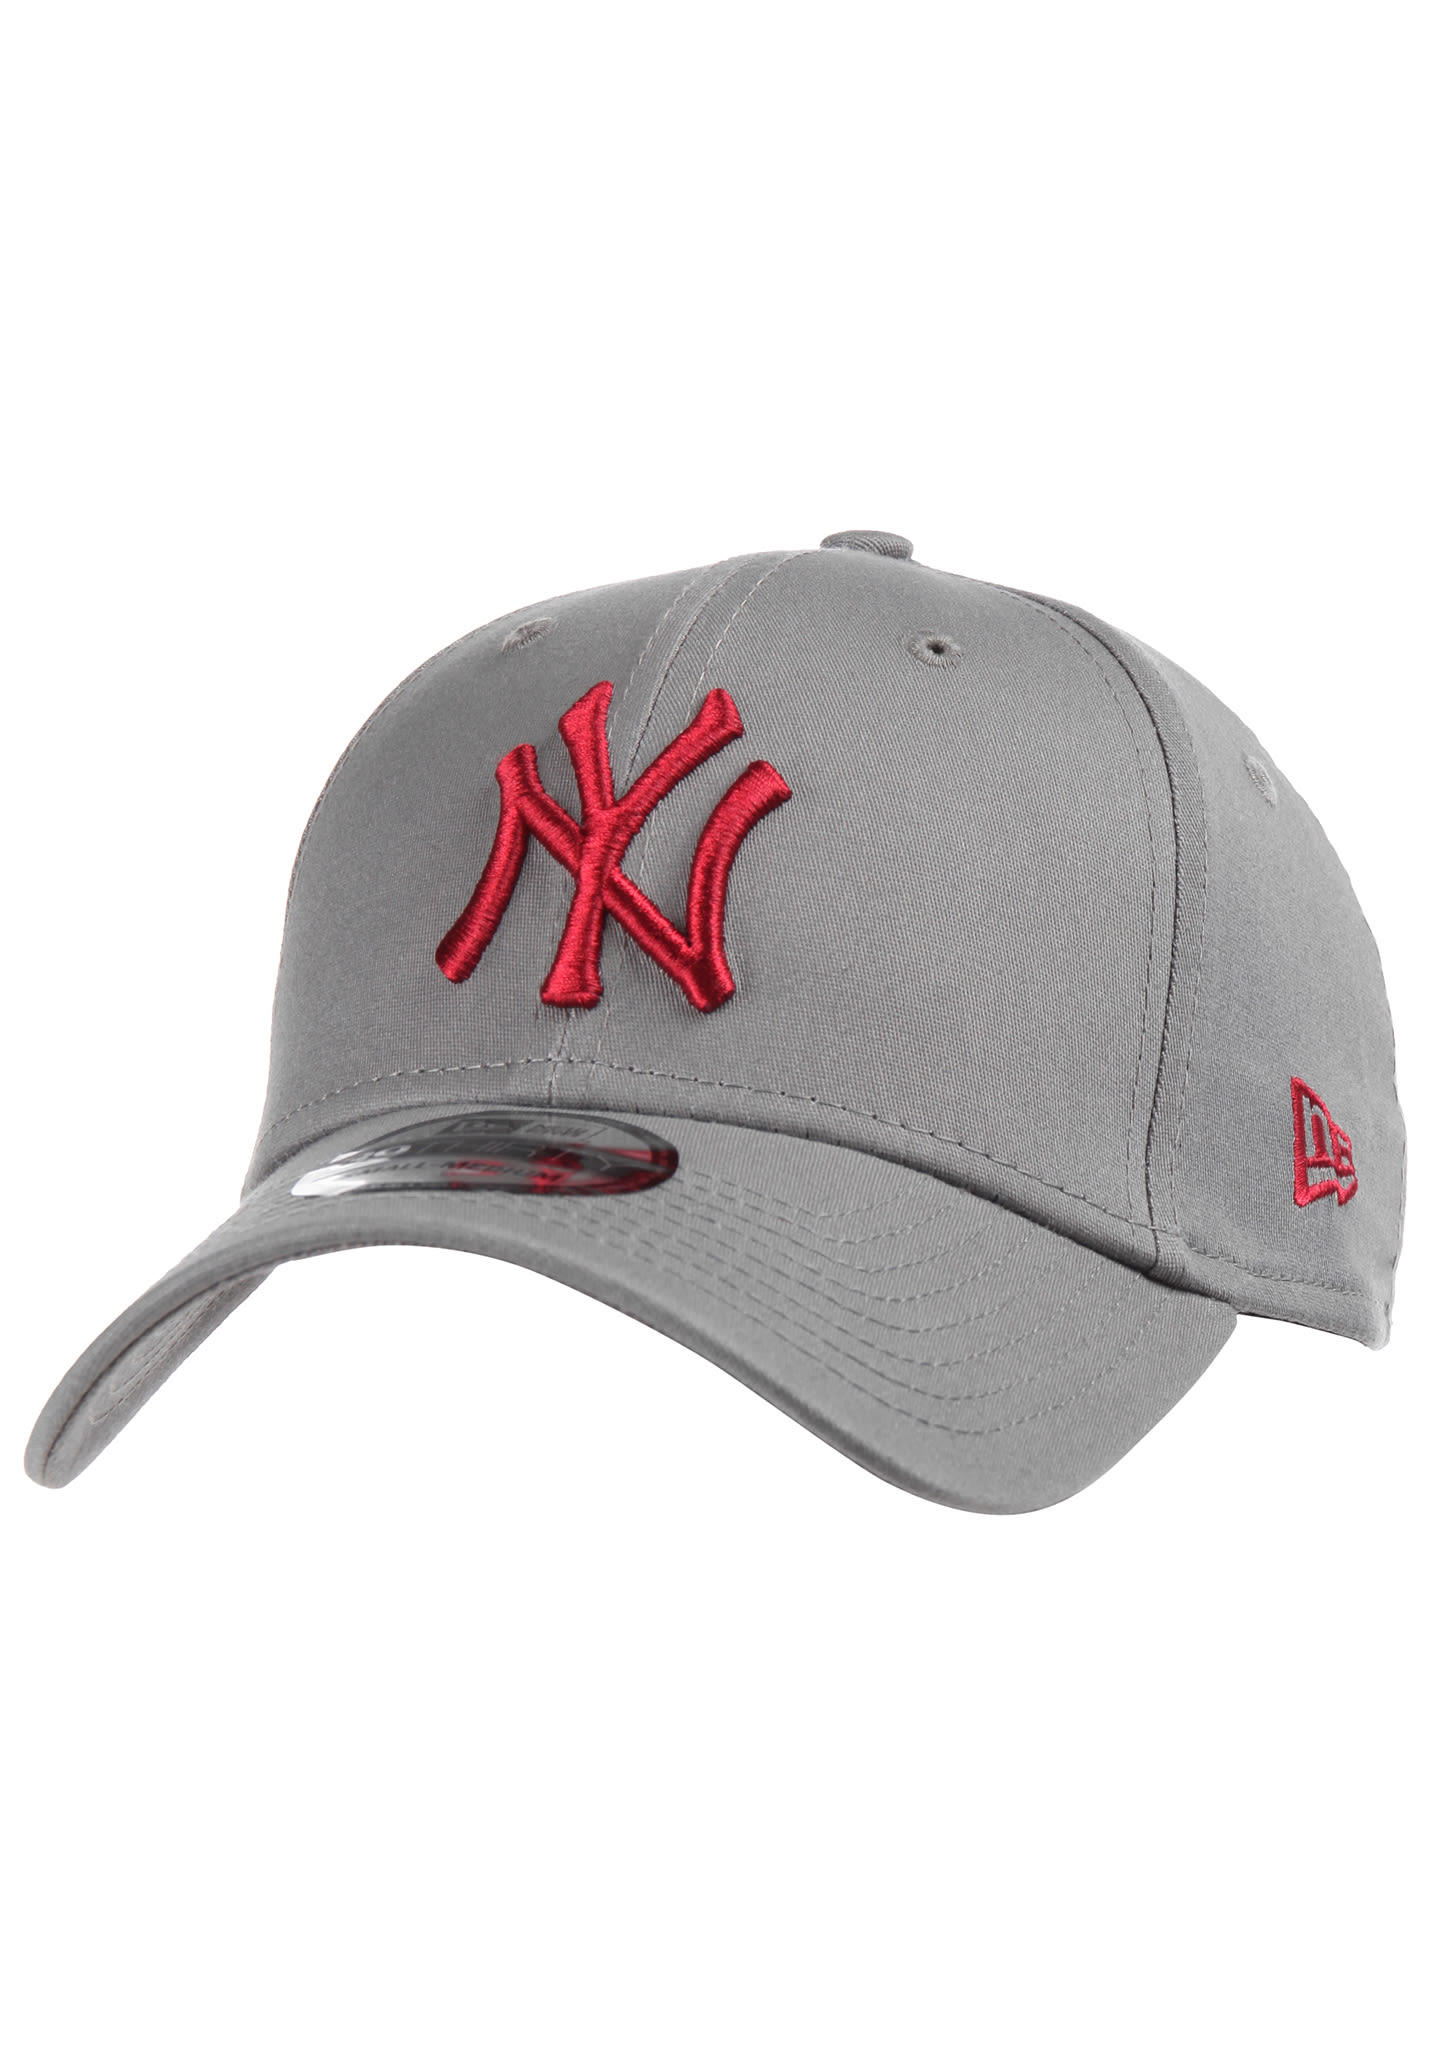 0f203376051 NEW Era 39Thirty New York Yankees - Flexfit Cap - Grey - Planet Sports